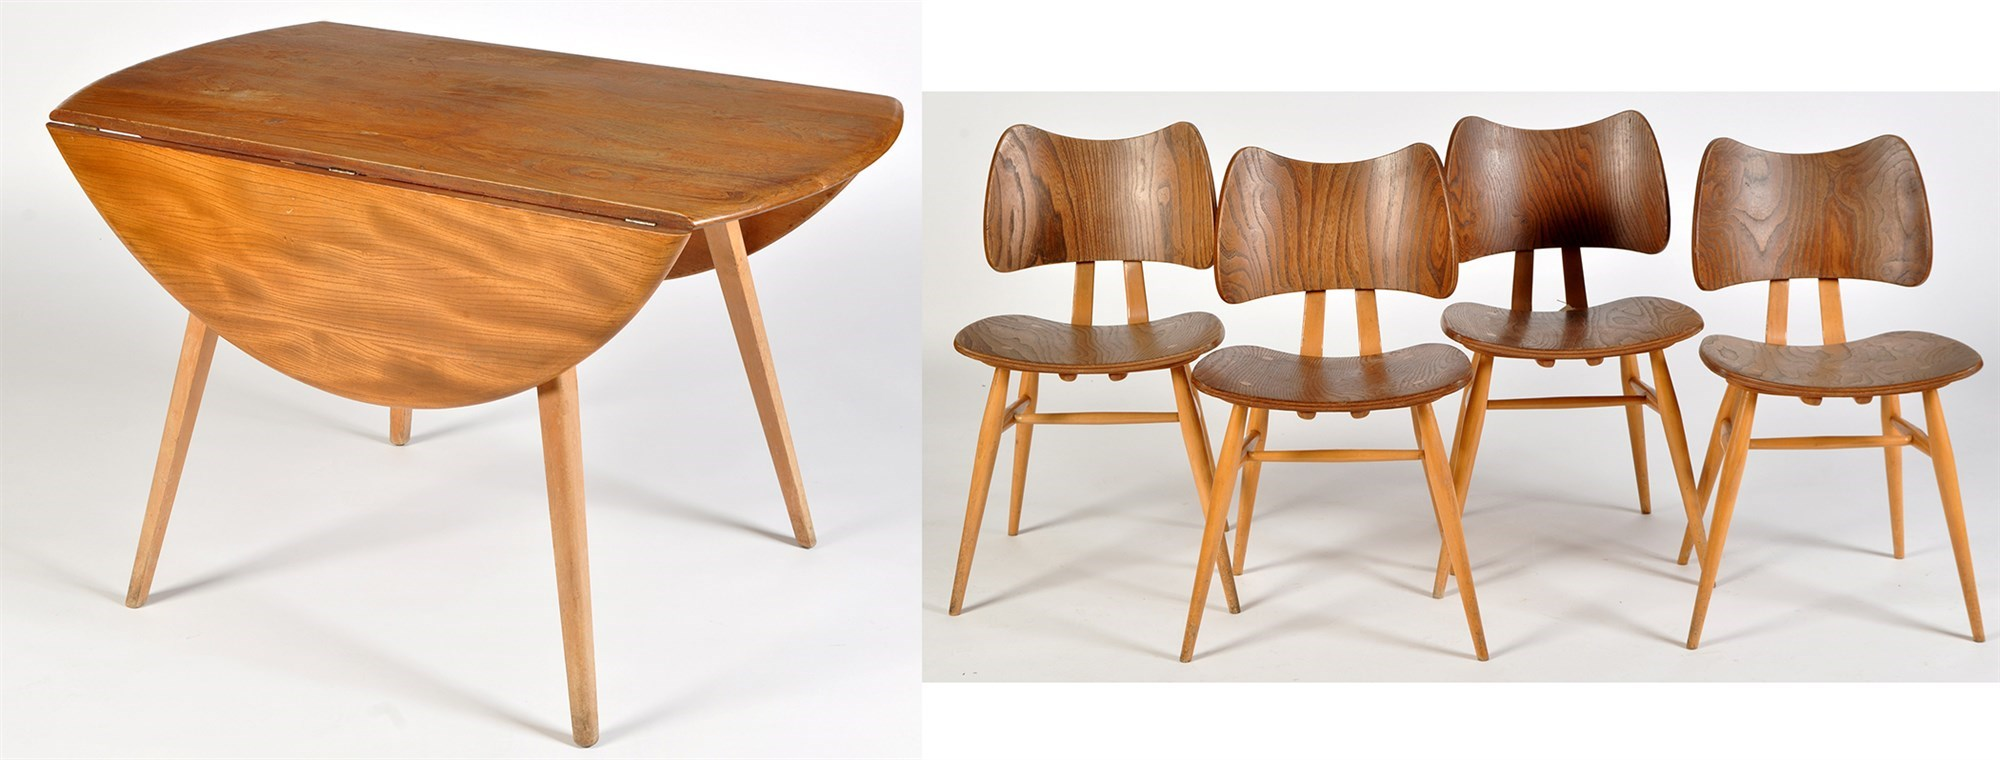 Four Ercol light elm and beech wood butterfly dining chairs; and an Ercol light elm and beech wood drop leaf dining table,